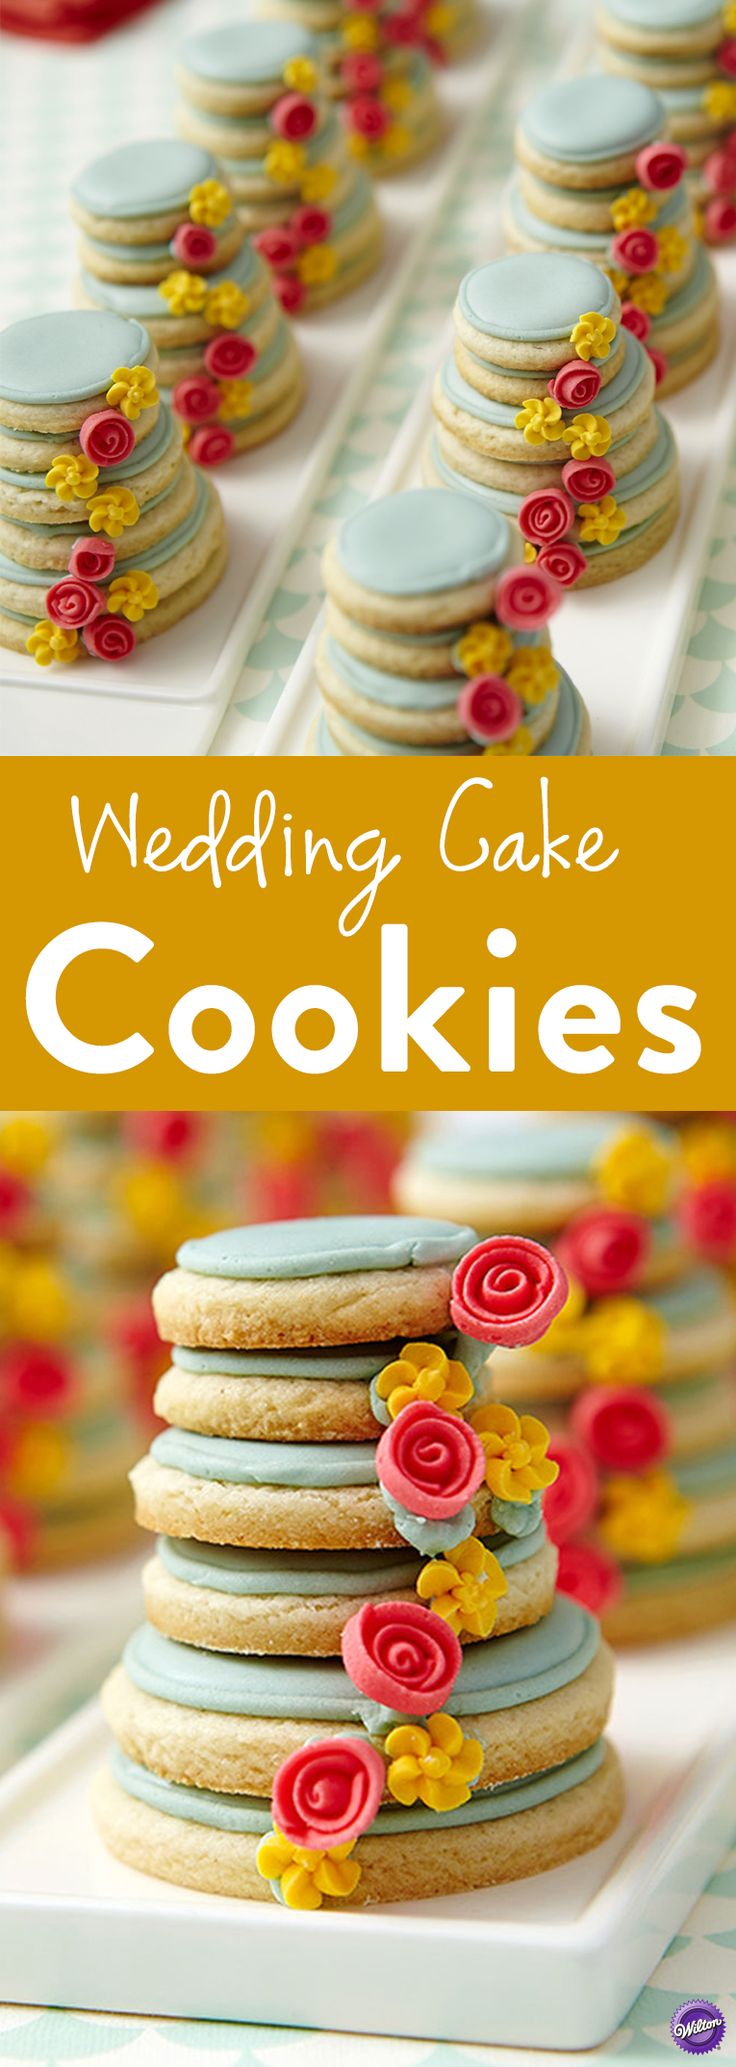 How to Make Wedding Cake Cookies - Put a wedding cake on everyone's plate! We've stacked a half-dozen cookies high and decorated them with a cascade of royal icing roses and drop flowers for a beautiful take-home wedding treat.